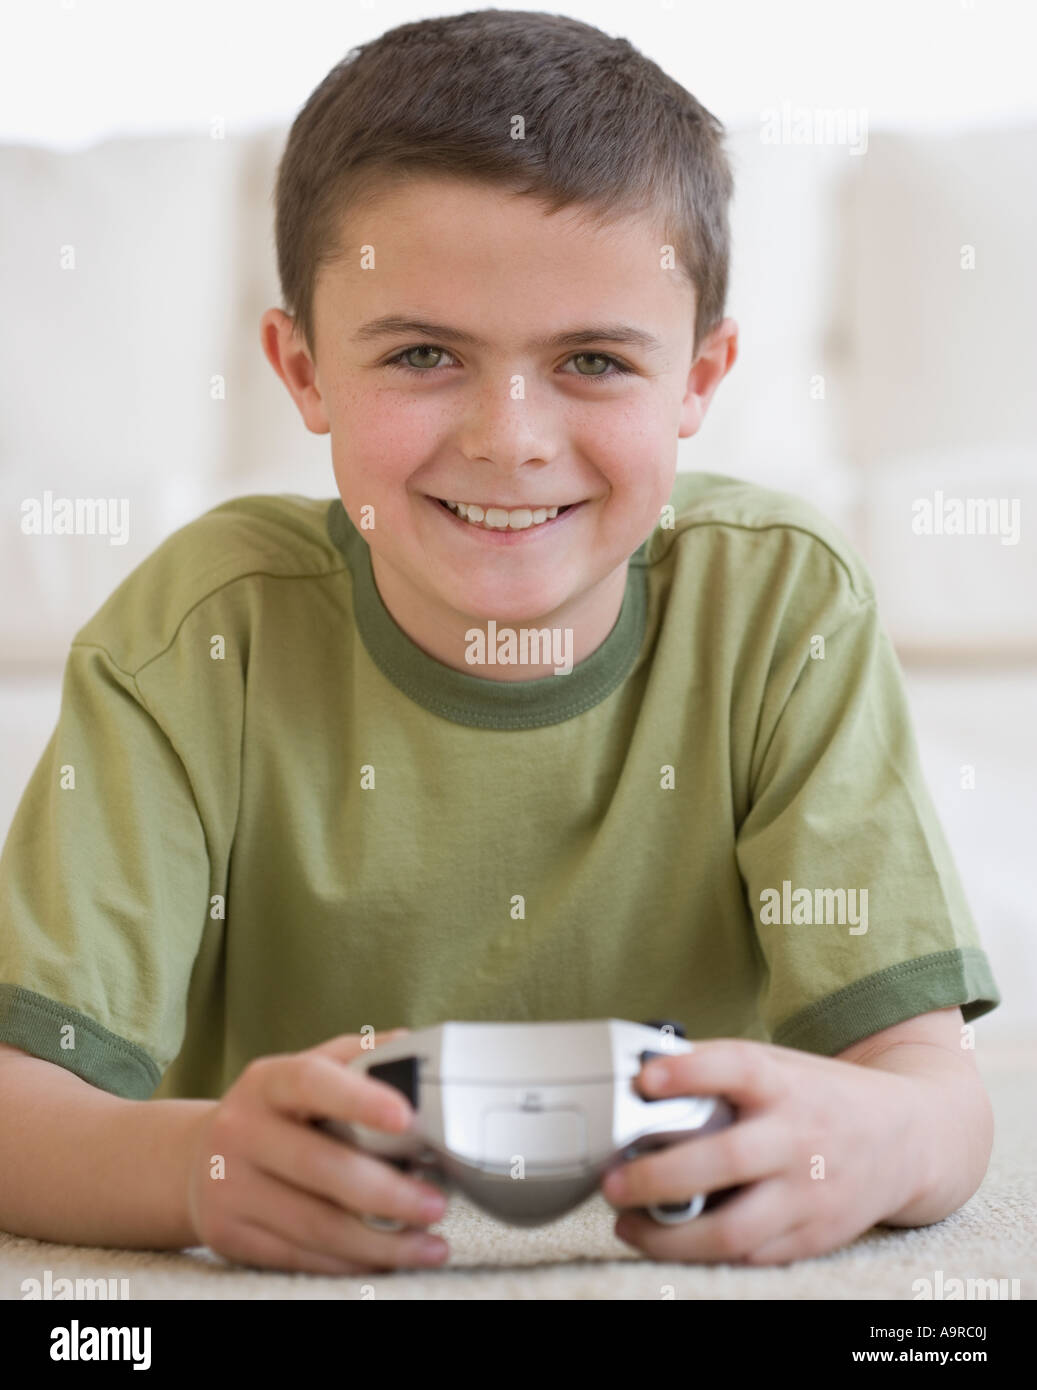 Boy holding video game controller - Stock Image